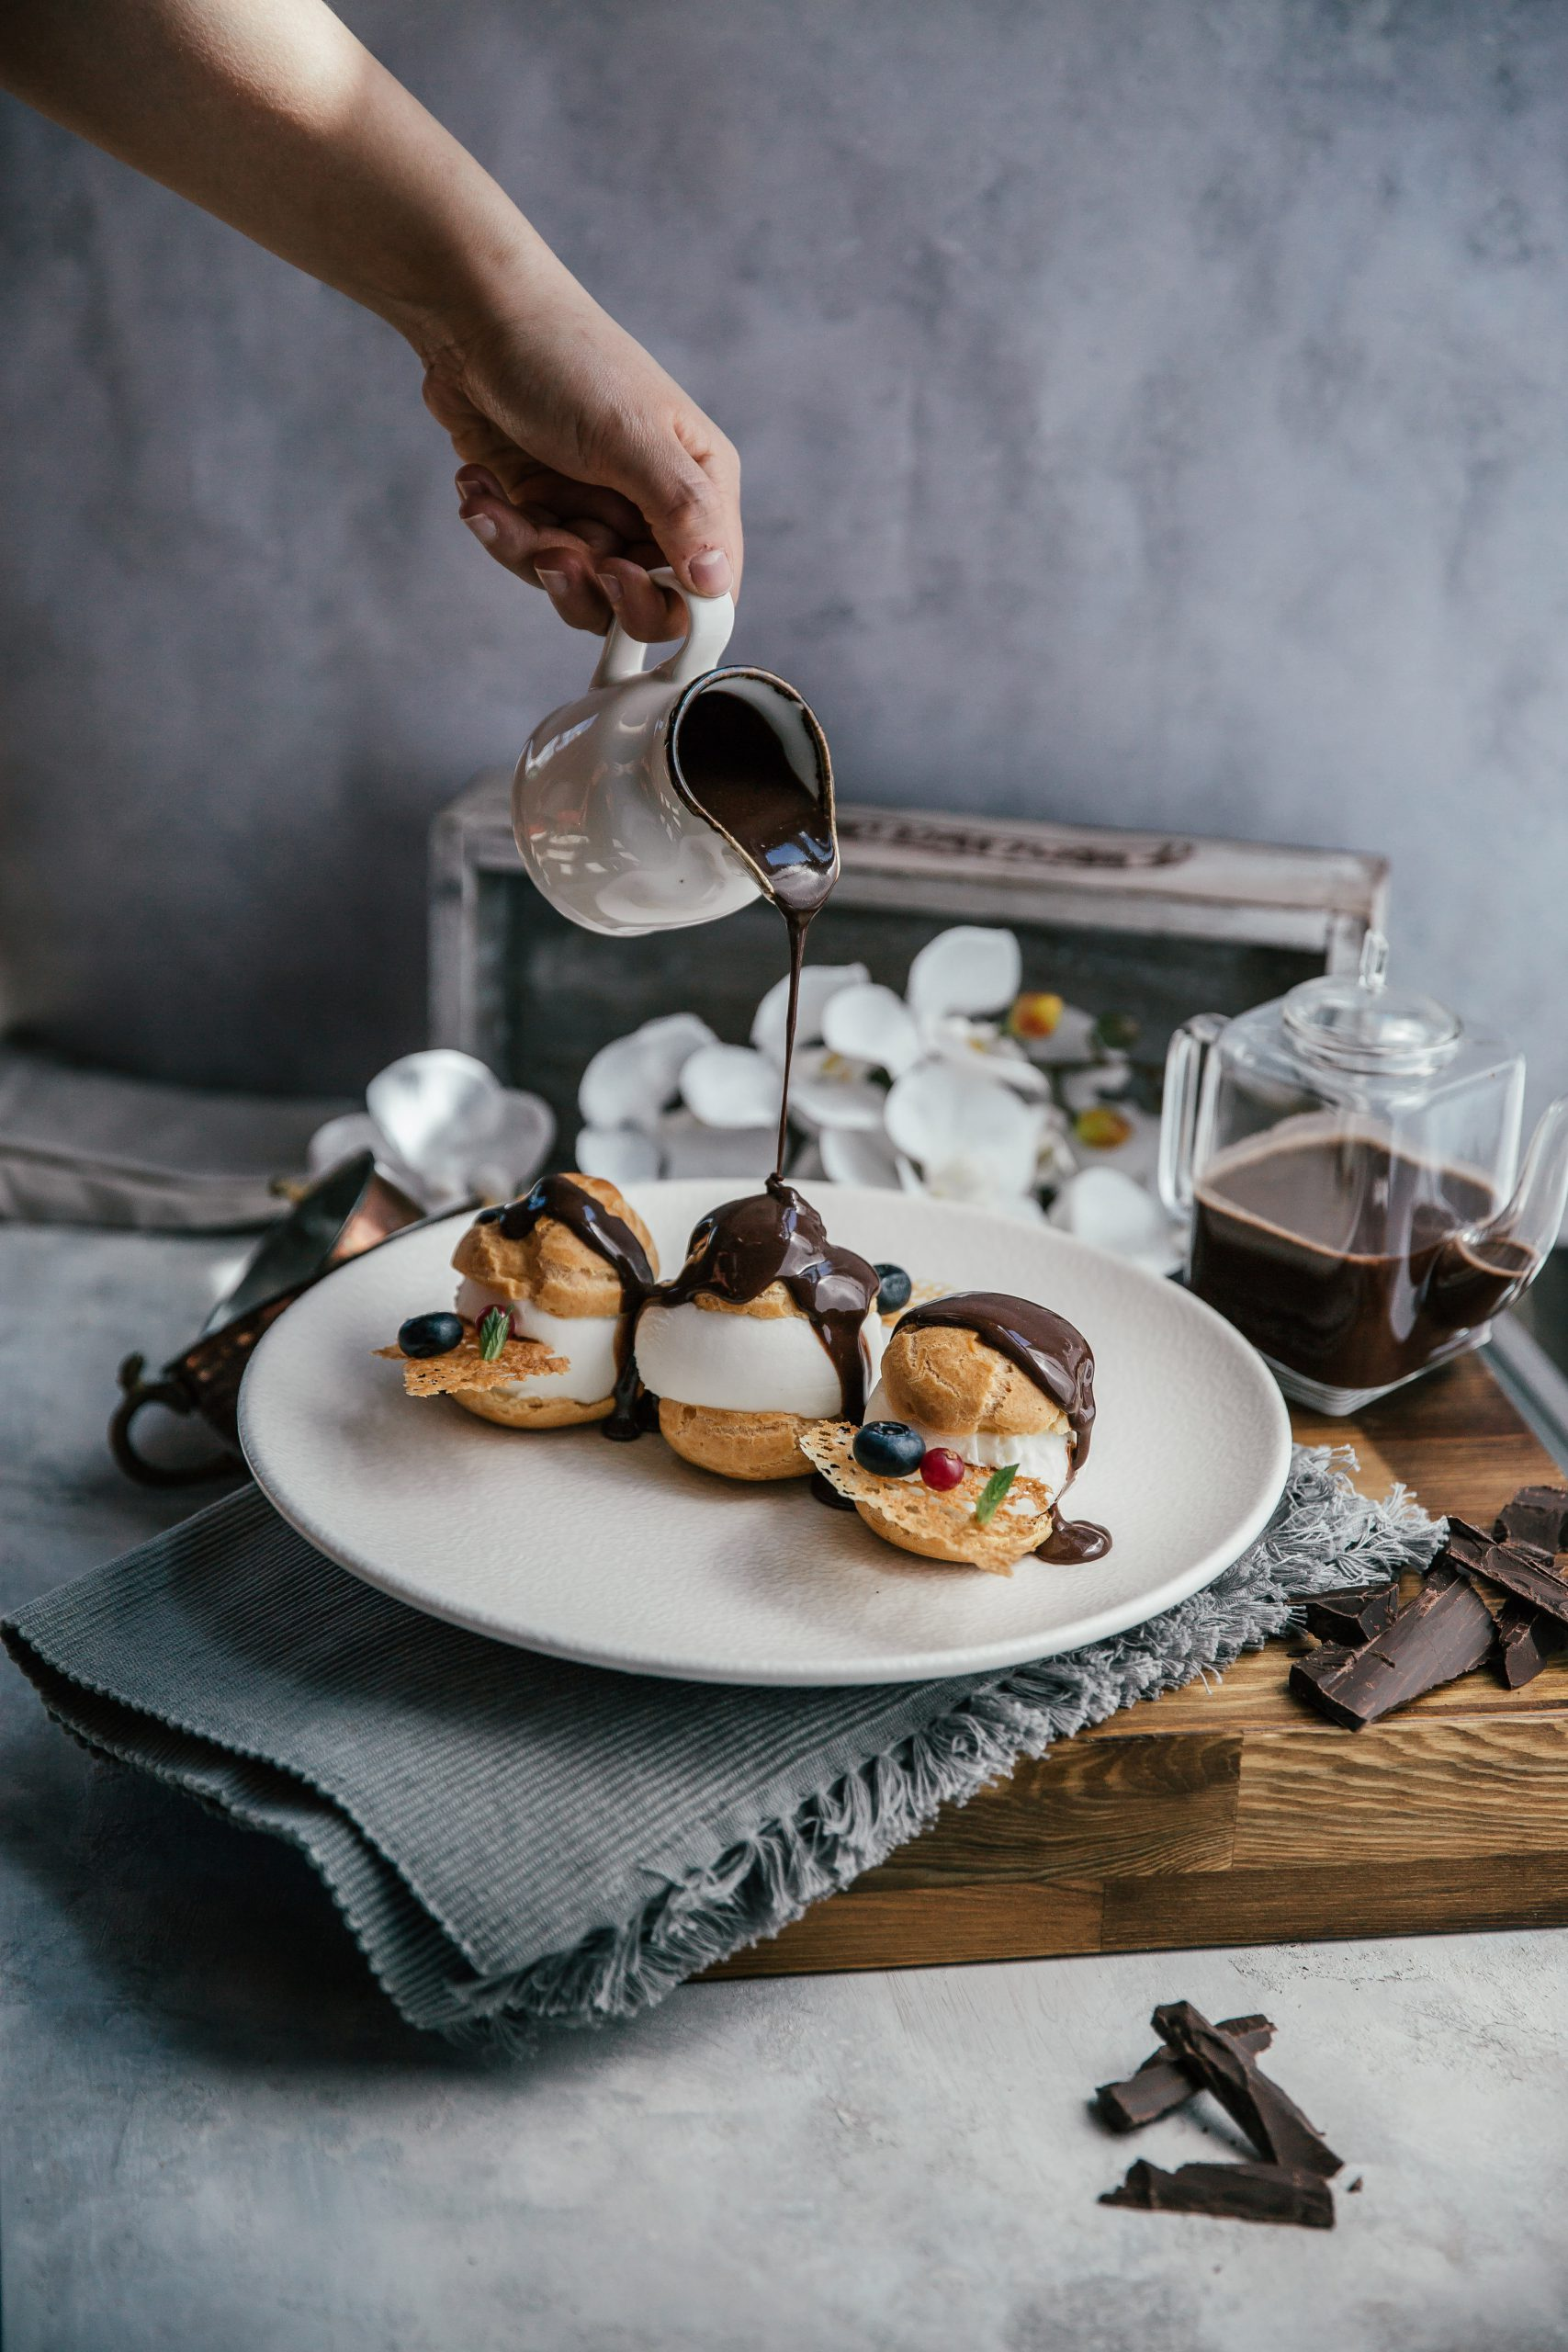 Lyndey Milan's Top Secrets for Perfect Choux Pastry